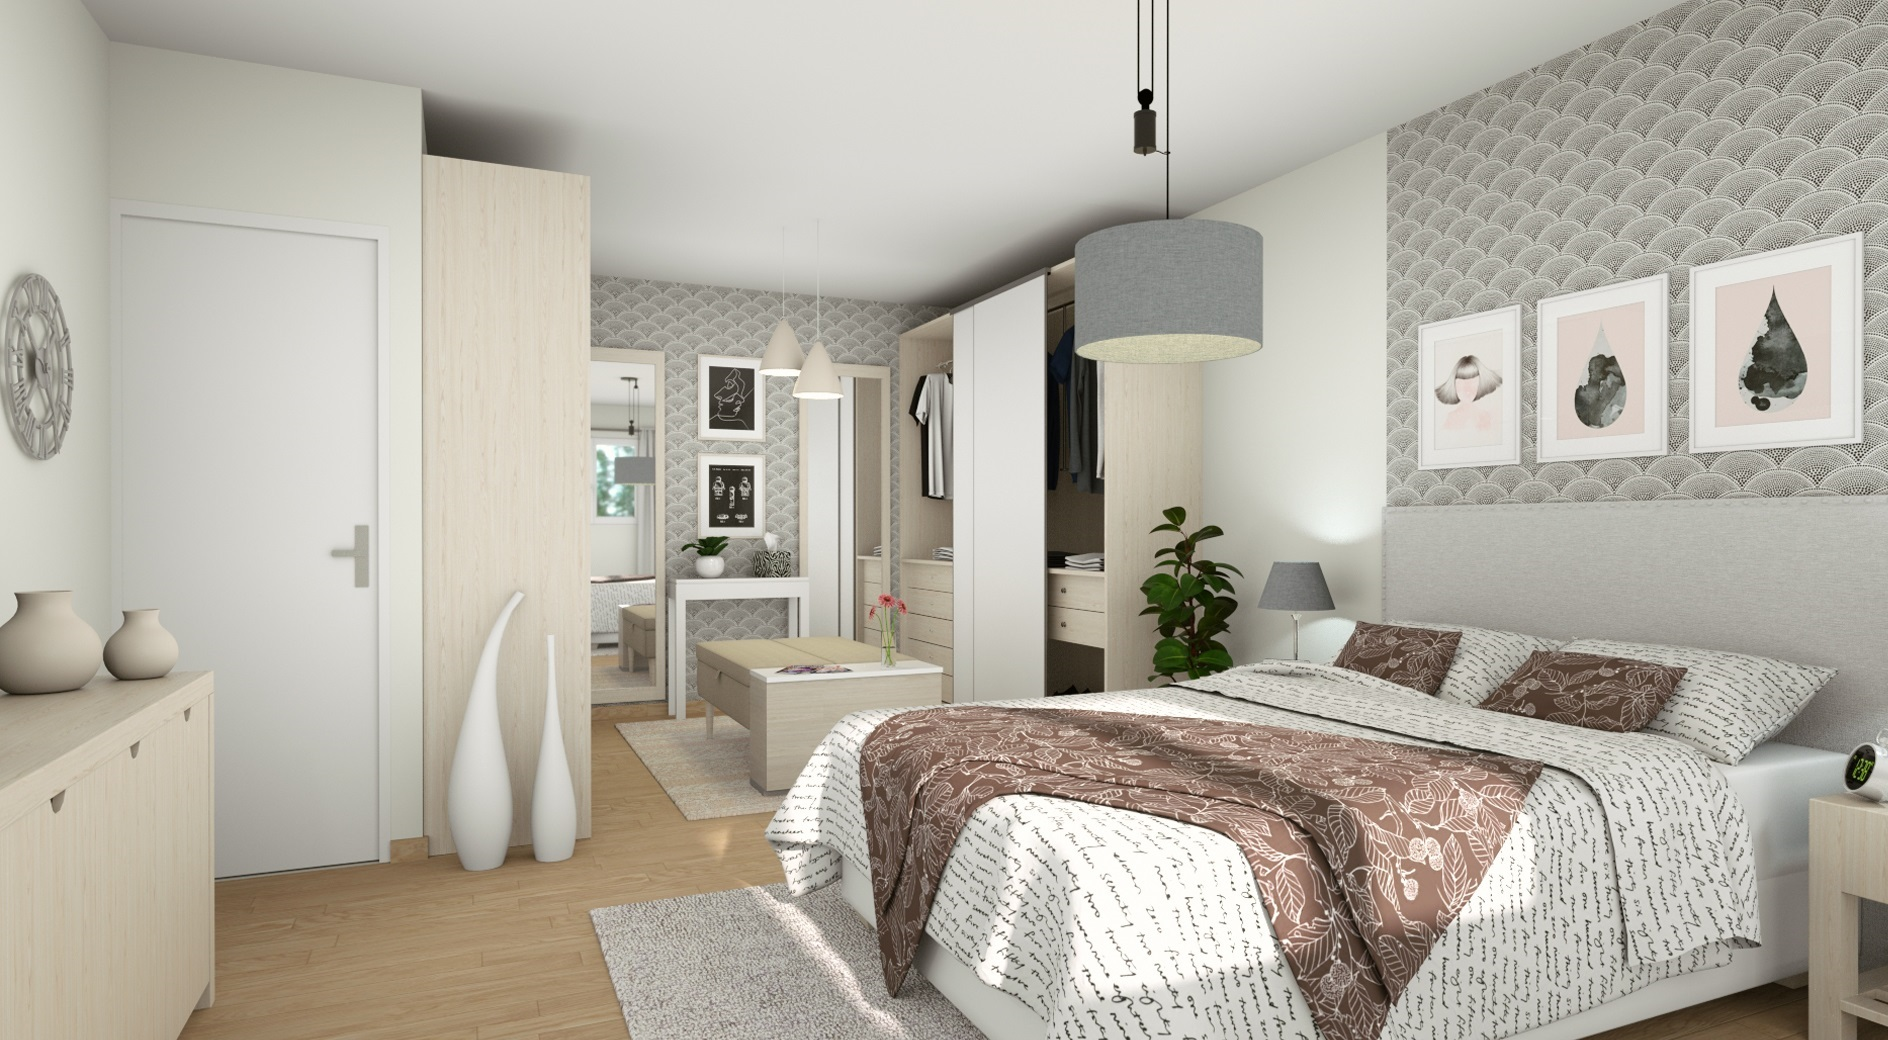 Interior Visual - 3D Layout Of A Master Suite With Dressing Room